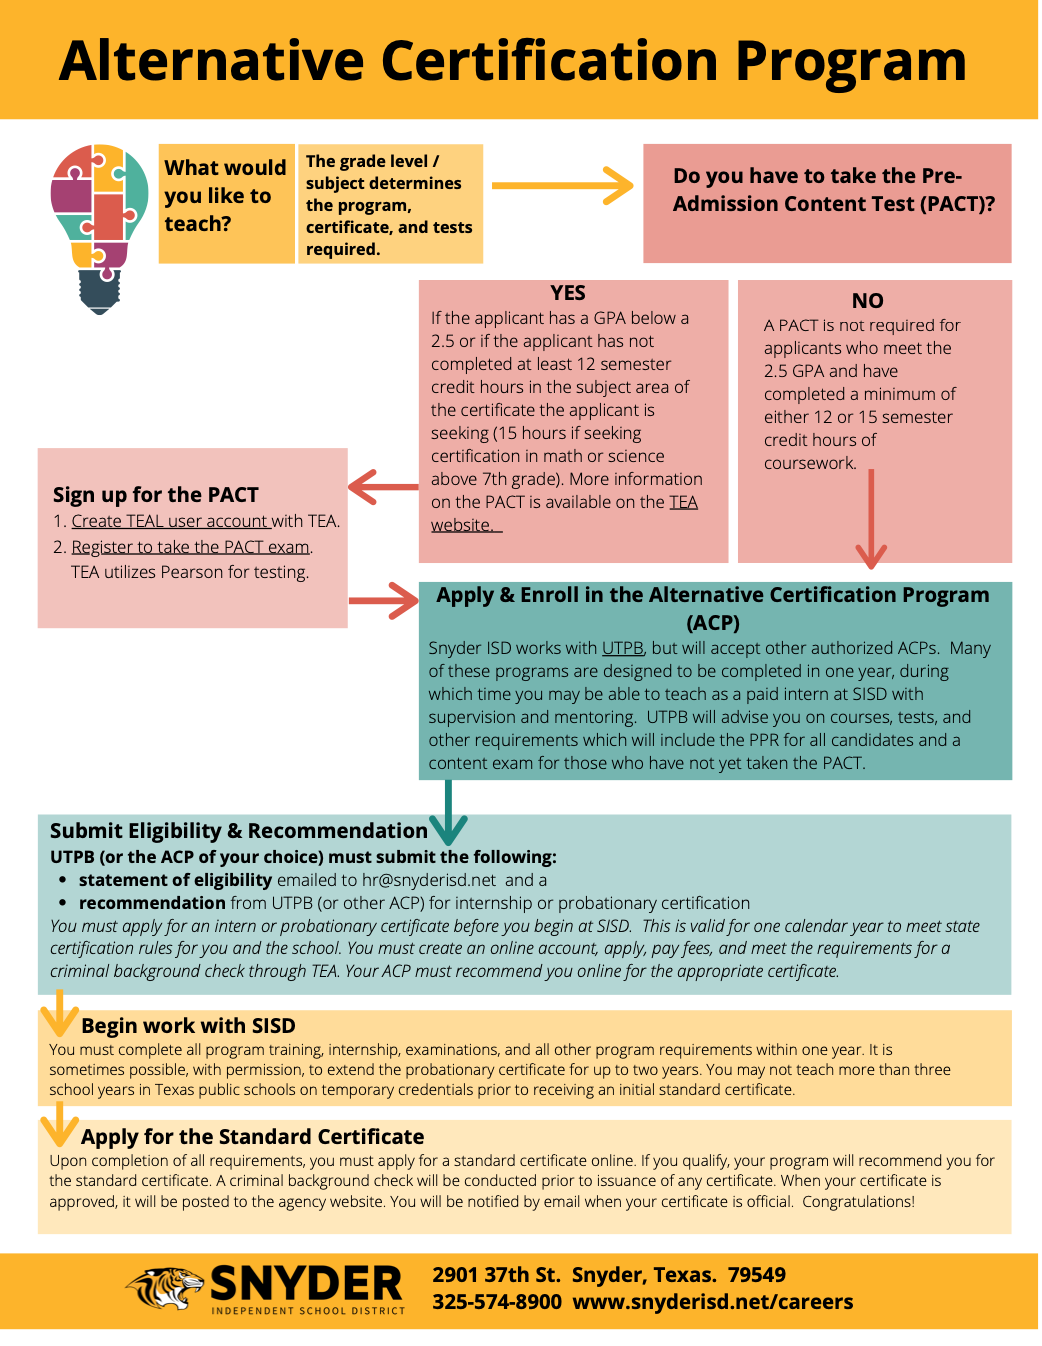 Alternative Certification Flow Chart - Click for pdf